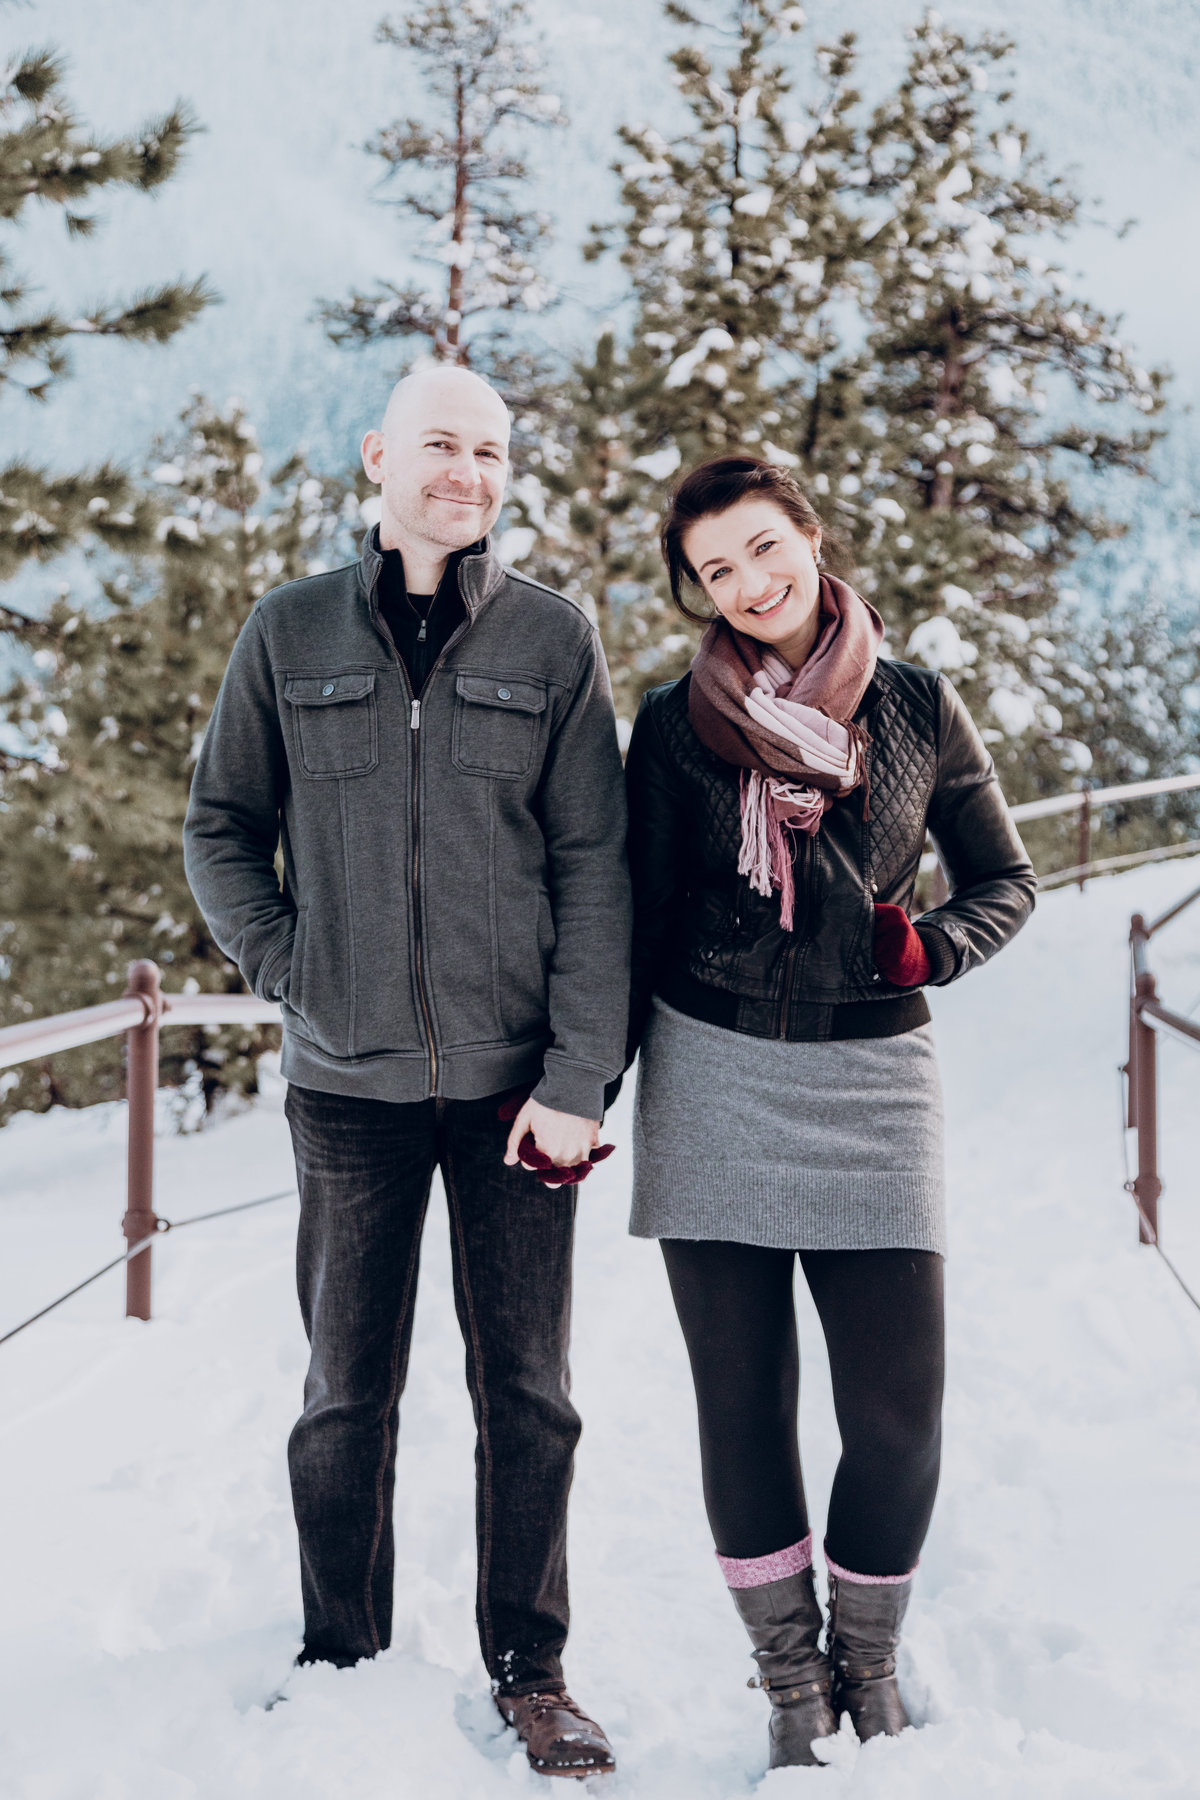 Lake Tahoe engagement photos couple poses on snowy hilltop